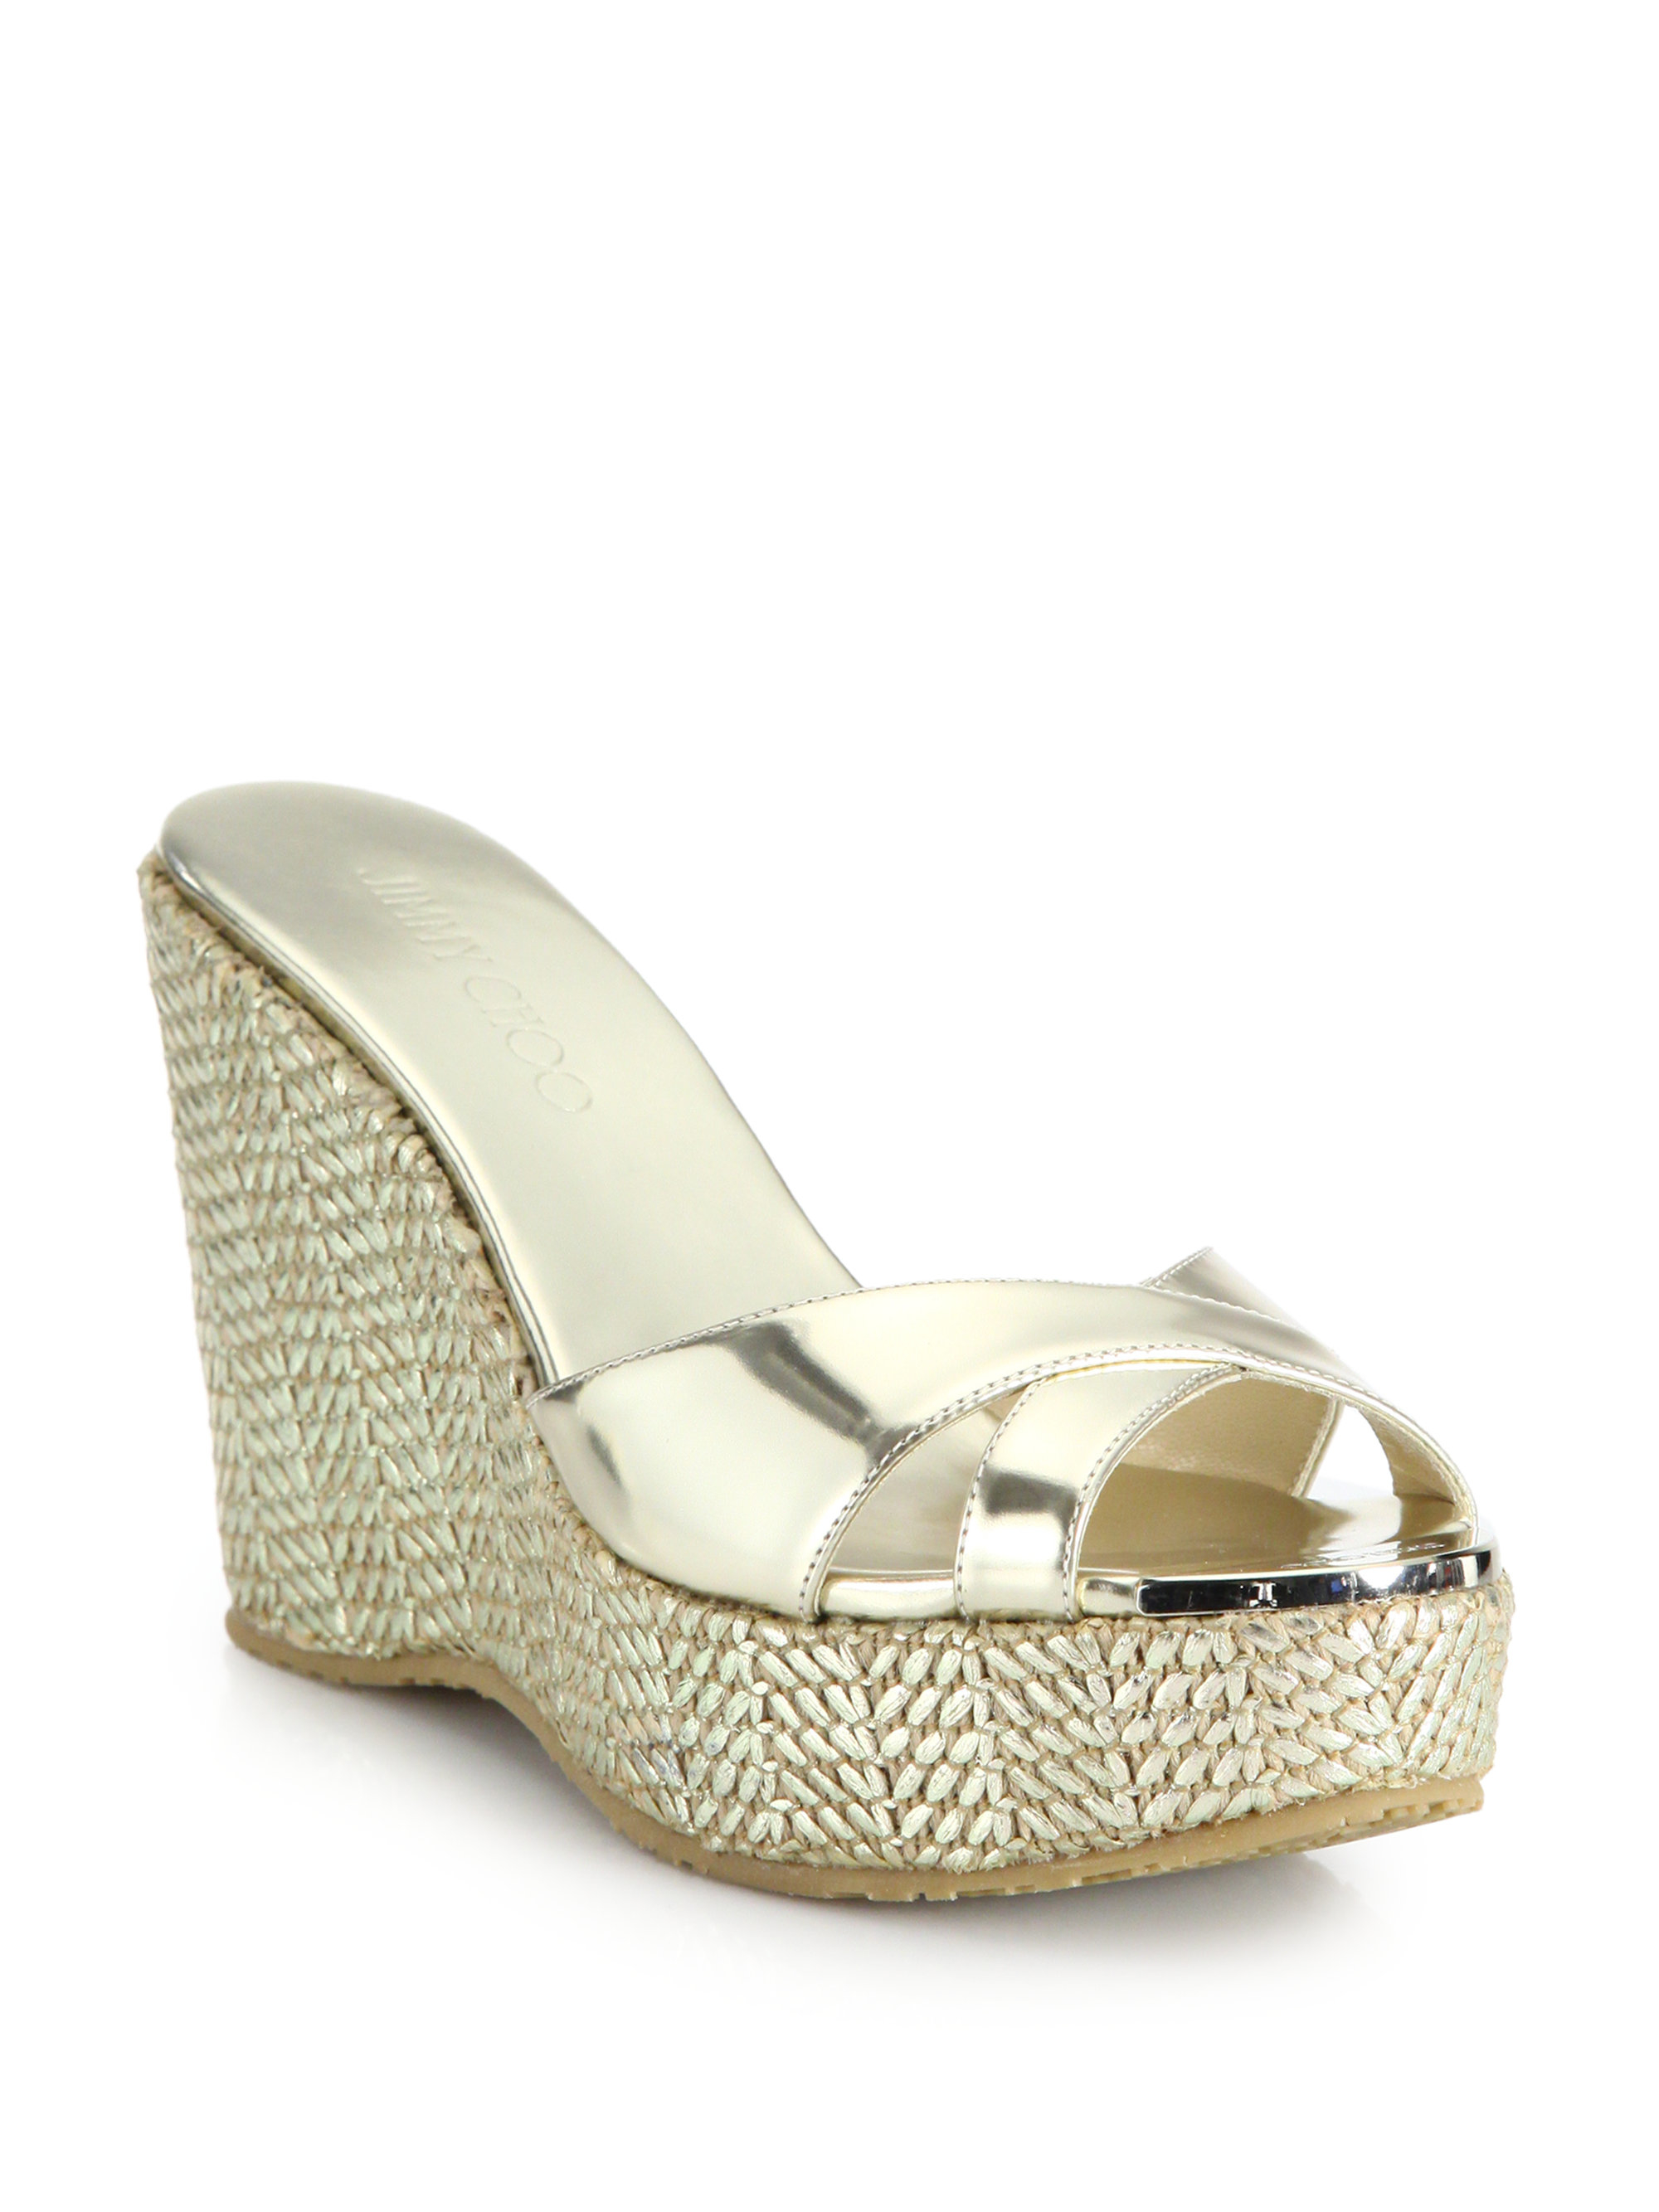 store sale Jimmy Choo Jewel-Embellished Leather Wedges cheap sale eastbay low shipping cheap price cheap sale get to buy PPMQ7PLi